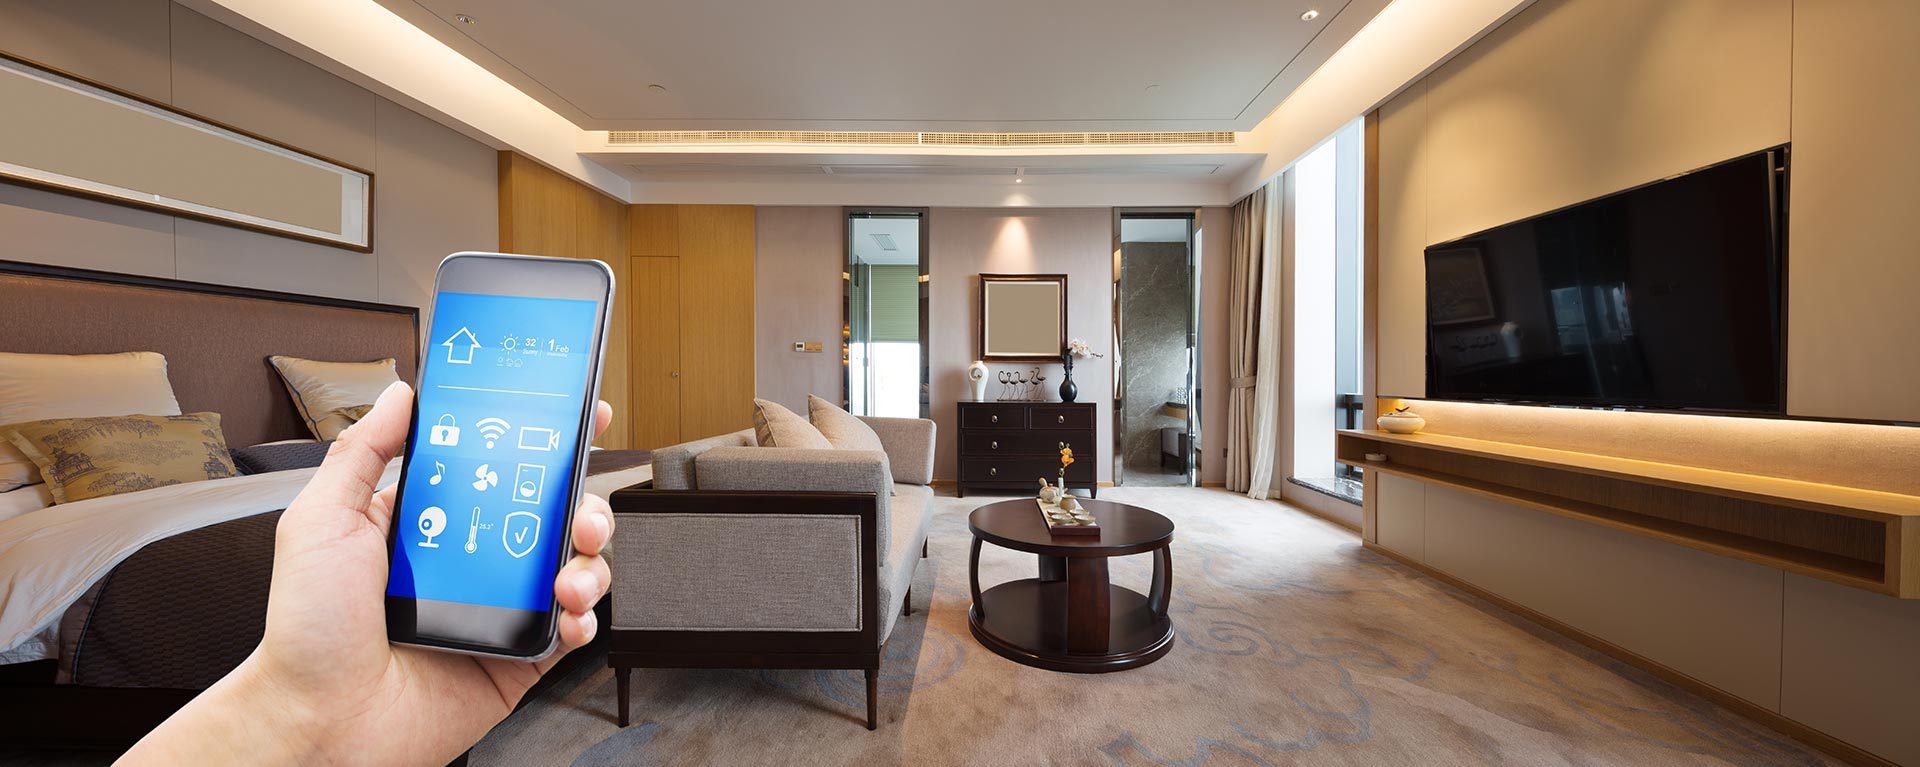 home automation company smart home installers